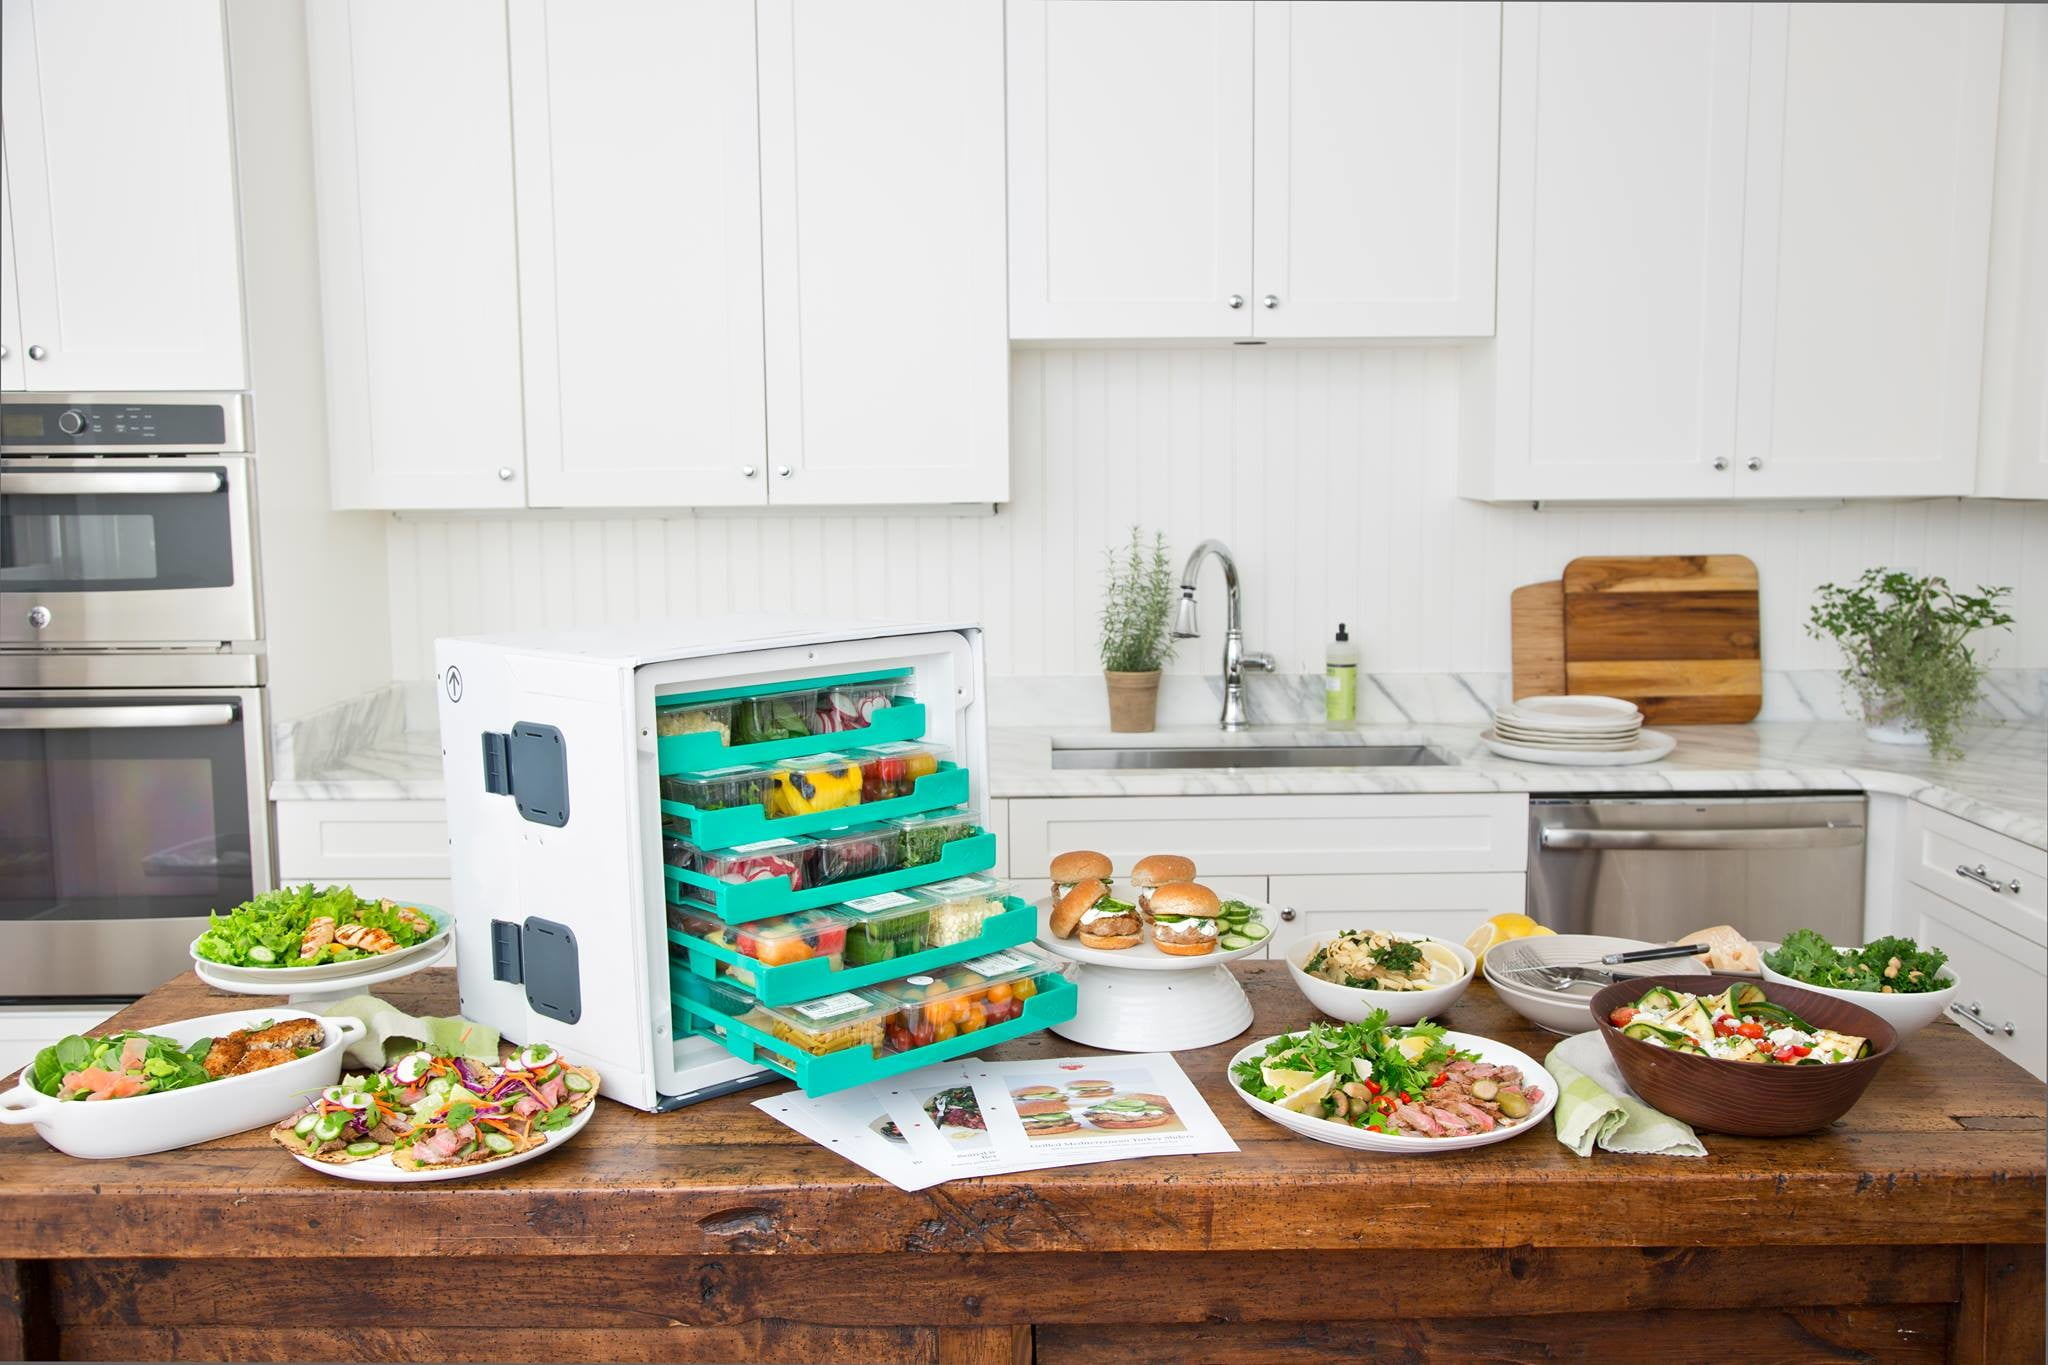 Terra\'s Kitchen is an Environmentally Friendly Meal Kit Startup ...